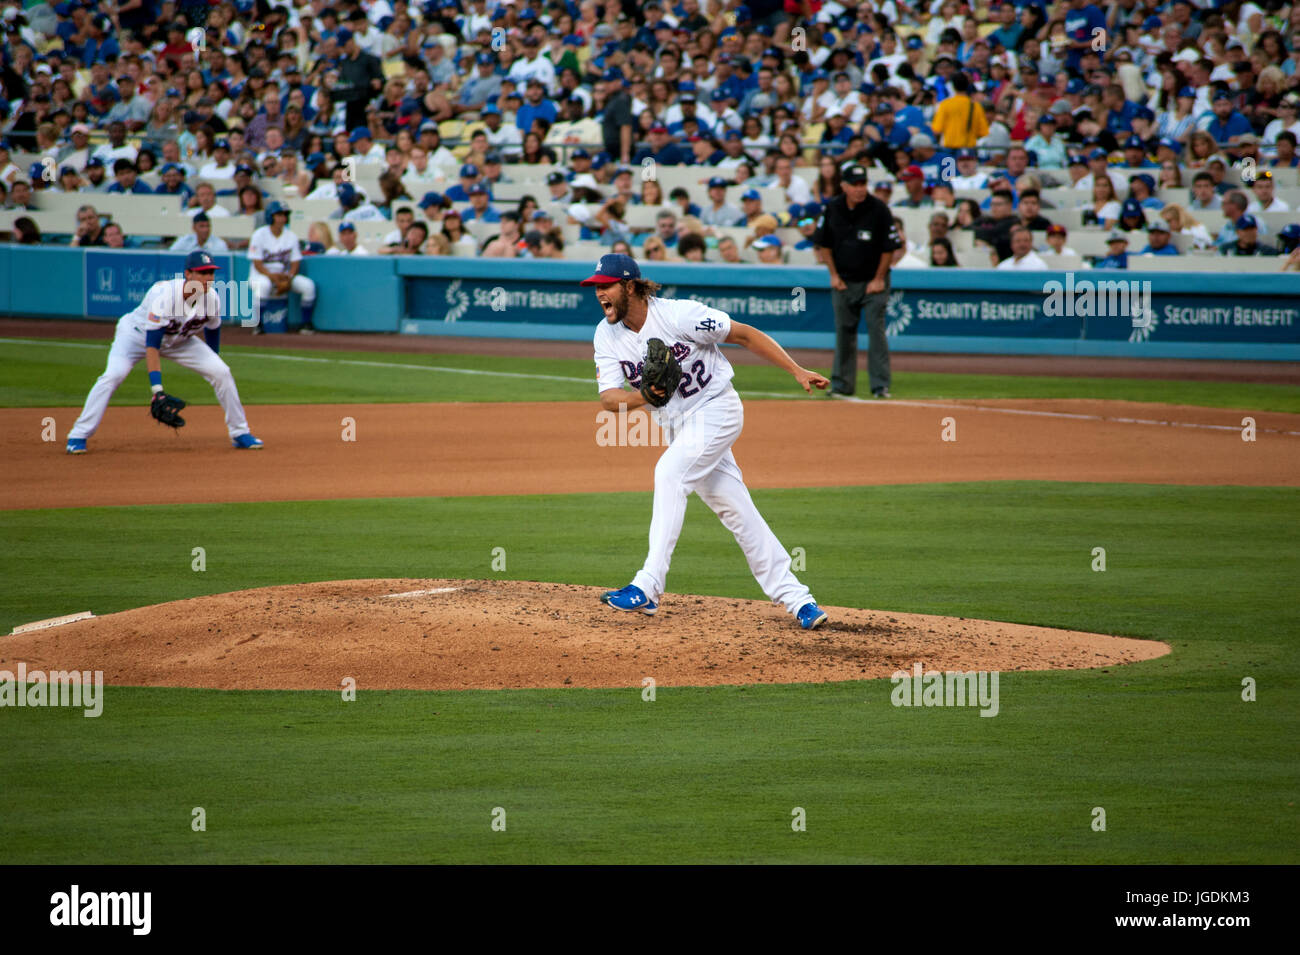 Dodger ace pitcher Clayton Kershaw reacts dramatically after striking out an opposing batter while pitching at Dodger - Stock Image